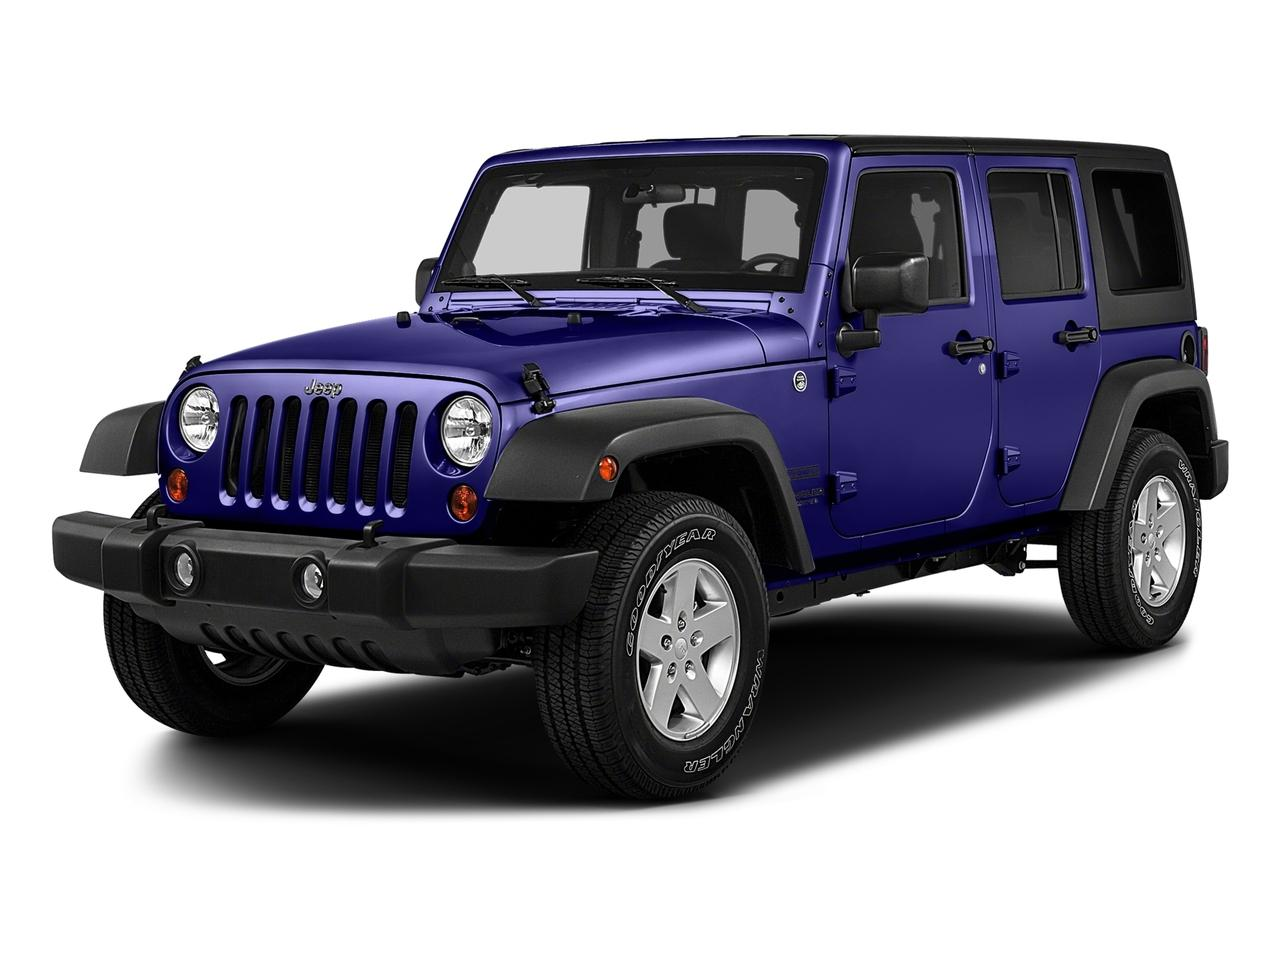 2017 Jeep Wrangler Unlimited Vehicle Photo in Smyrna, GA 30080